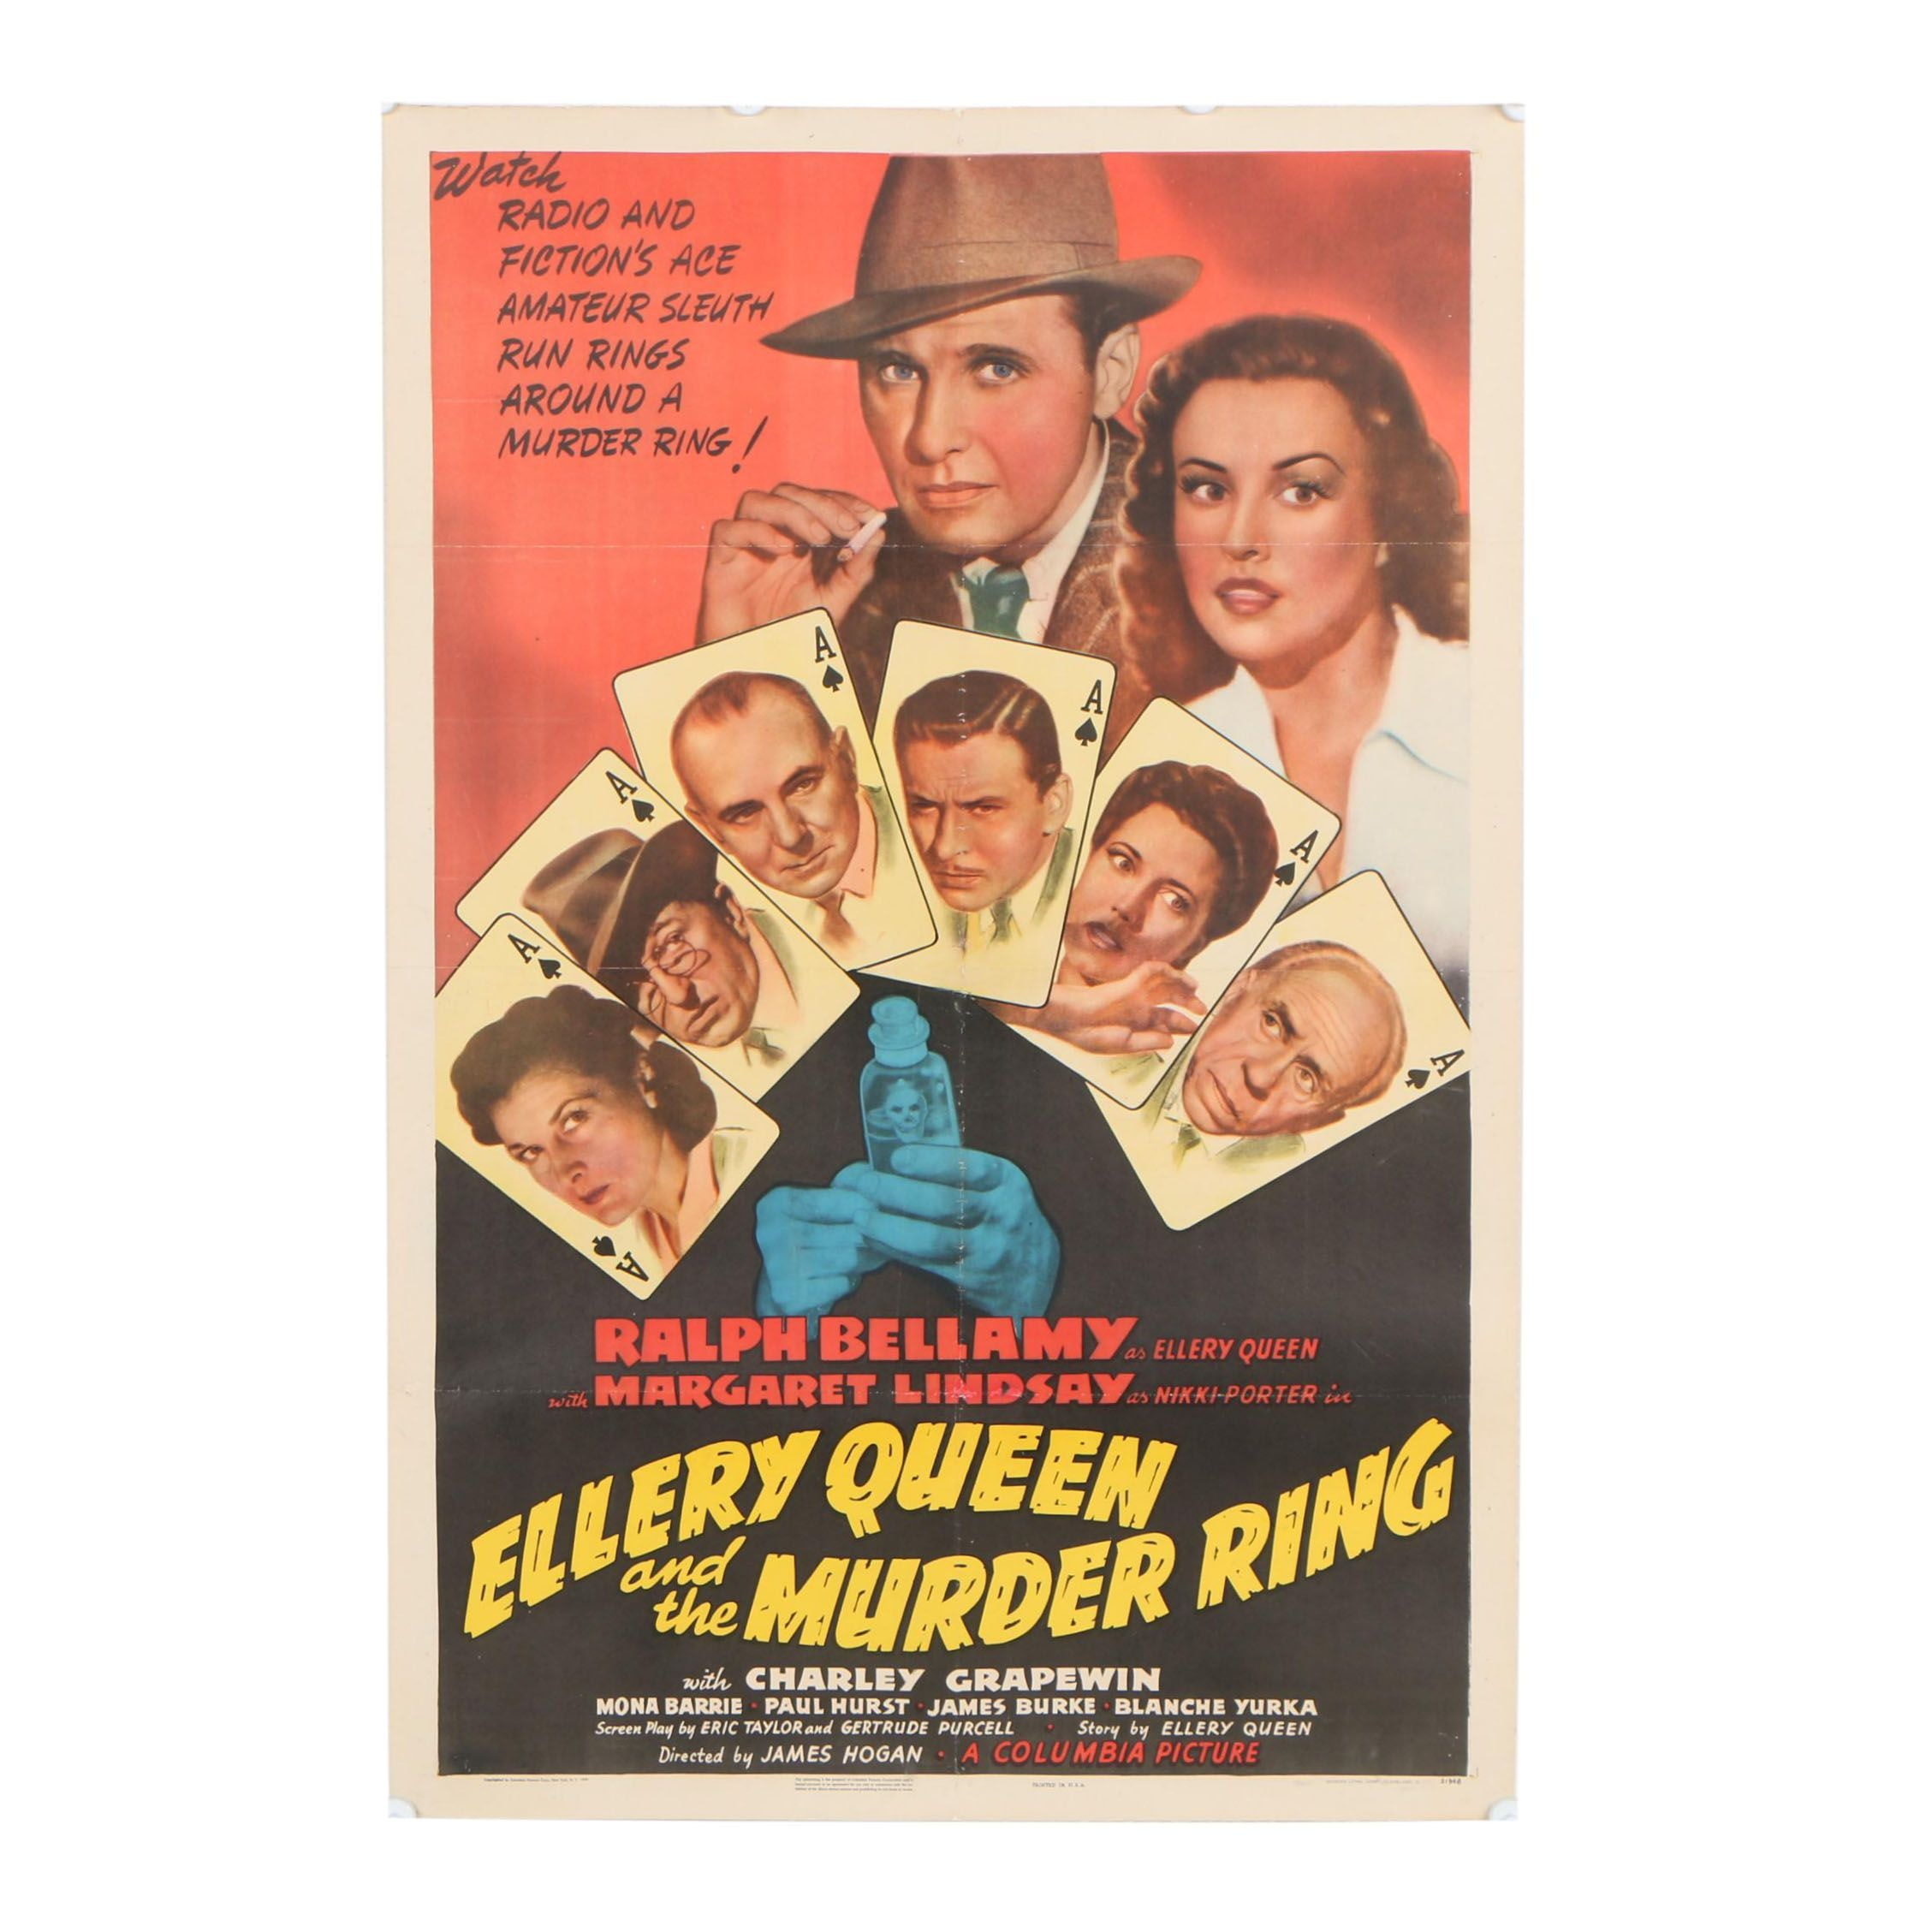 """Ellery Queen and the Murder Ring"" Theatrical One Sheet Poster, 1941"